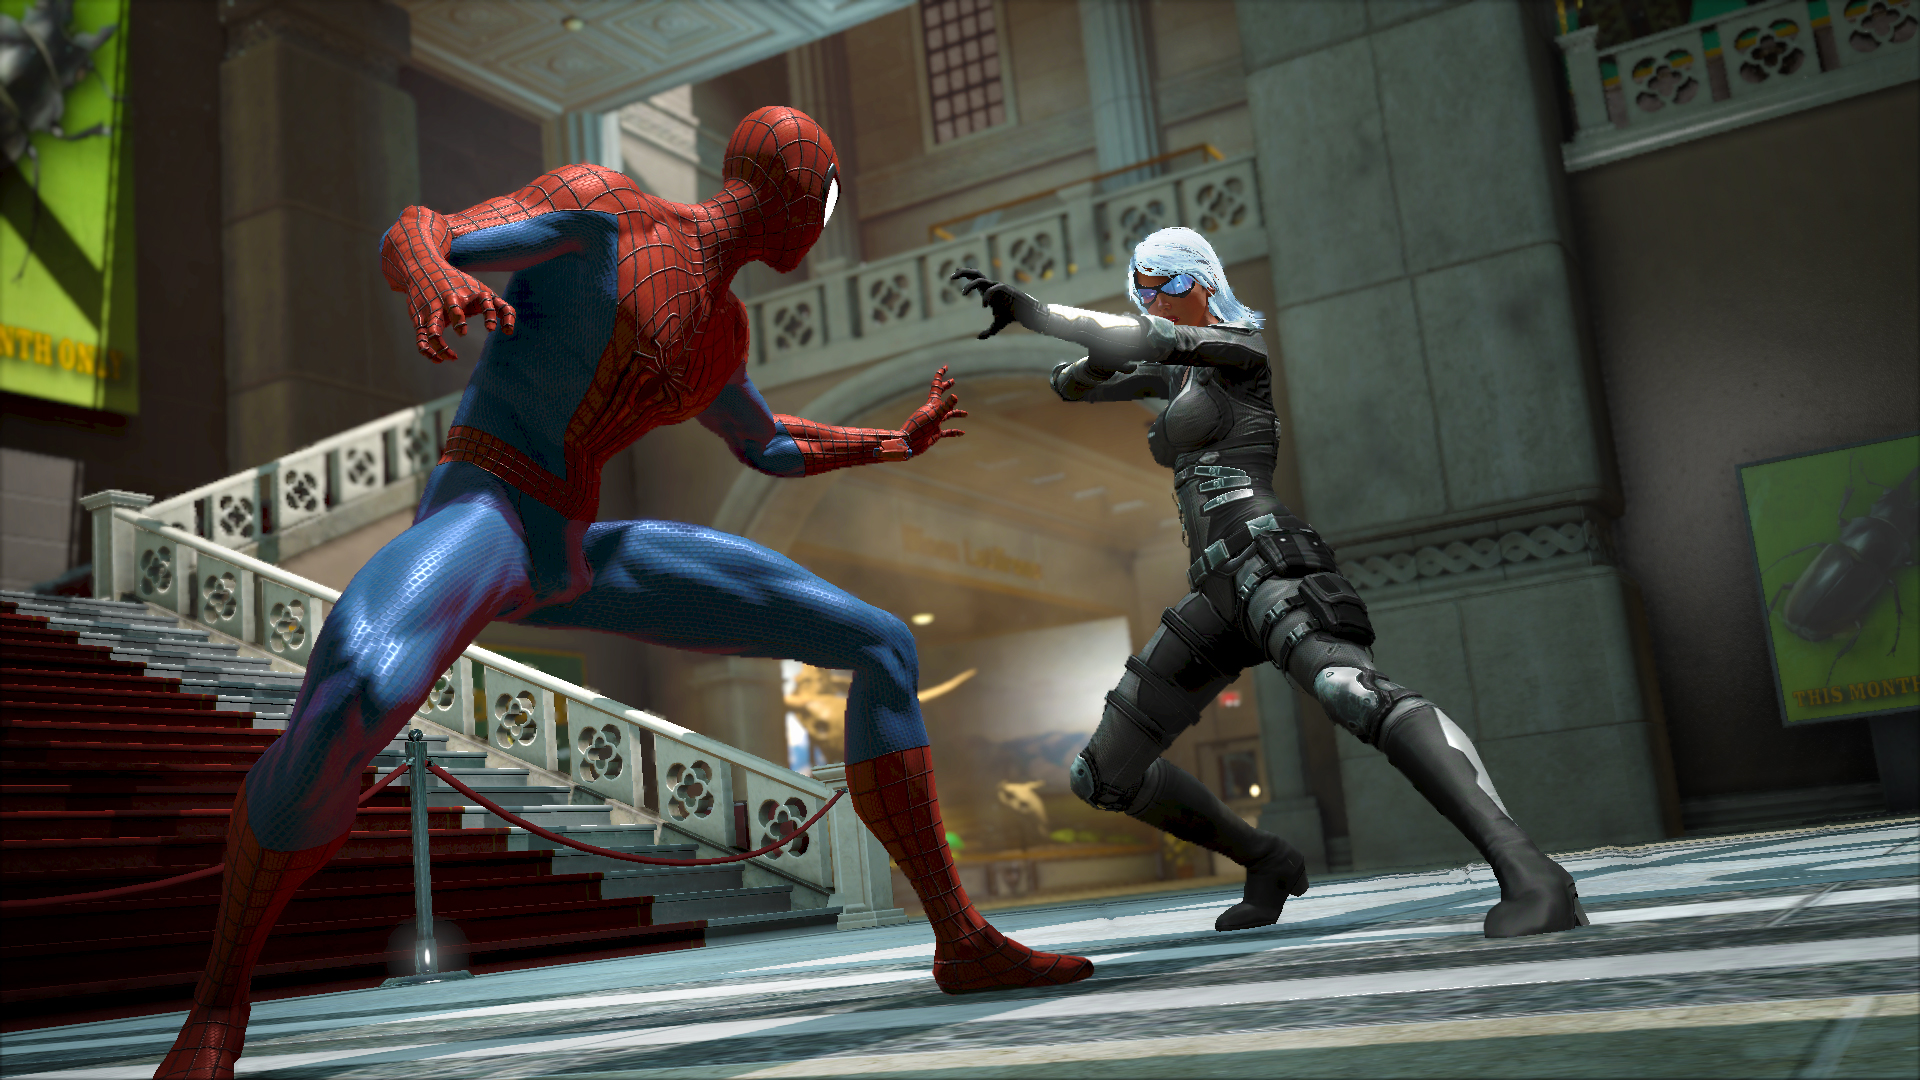 The Amazing Spider Man 2 Review Otaku Dome The Latest News In Anime Manga Gaming And More